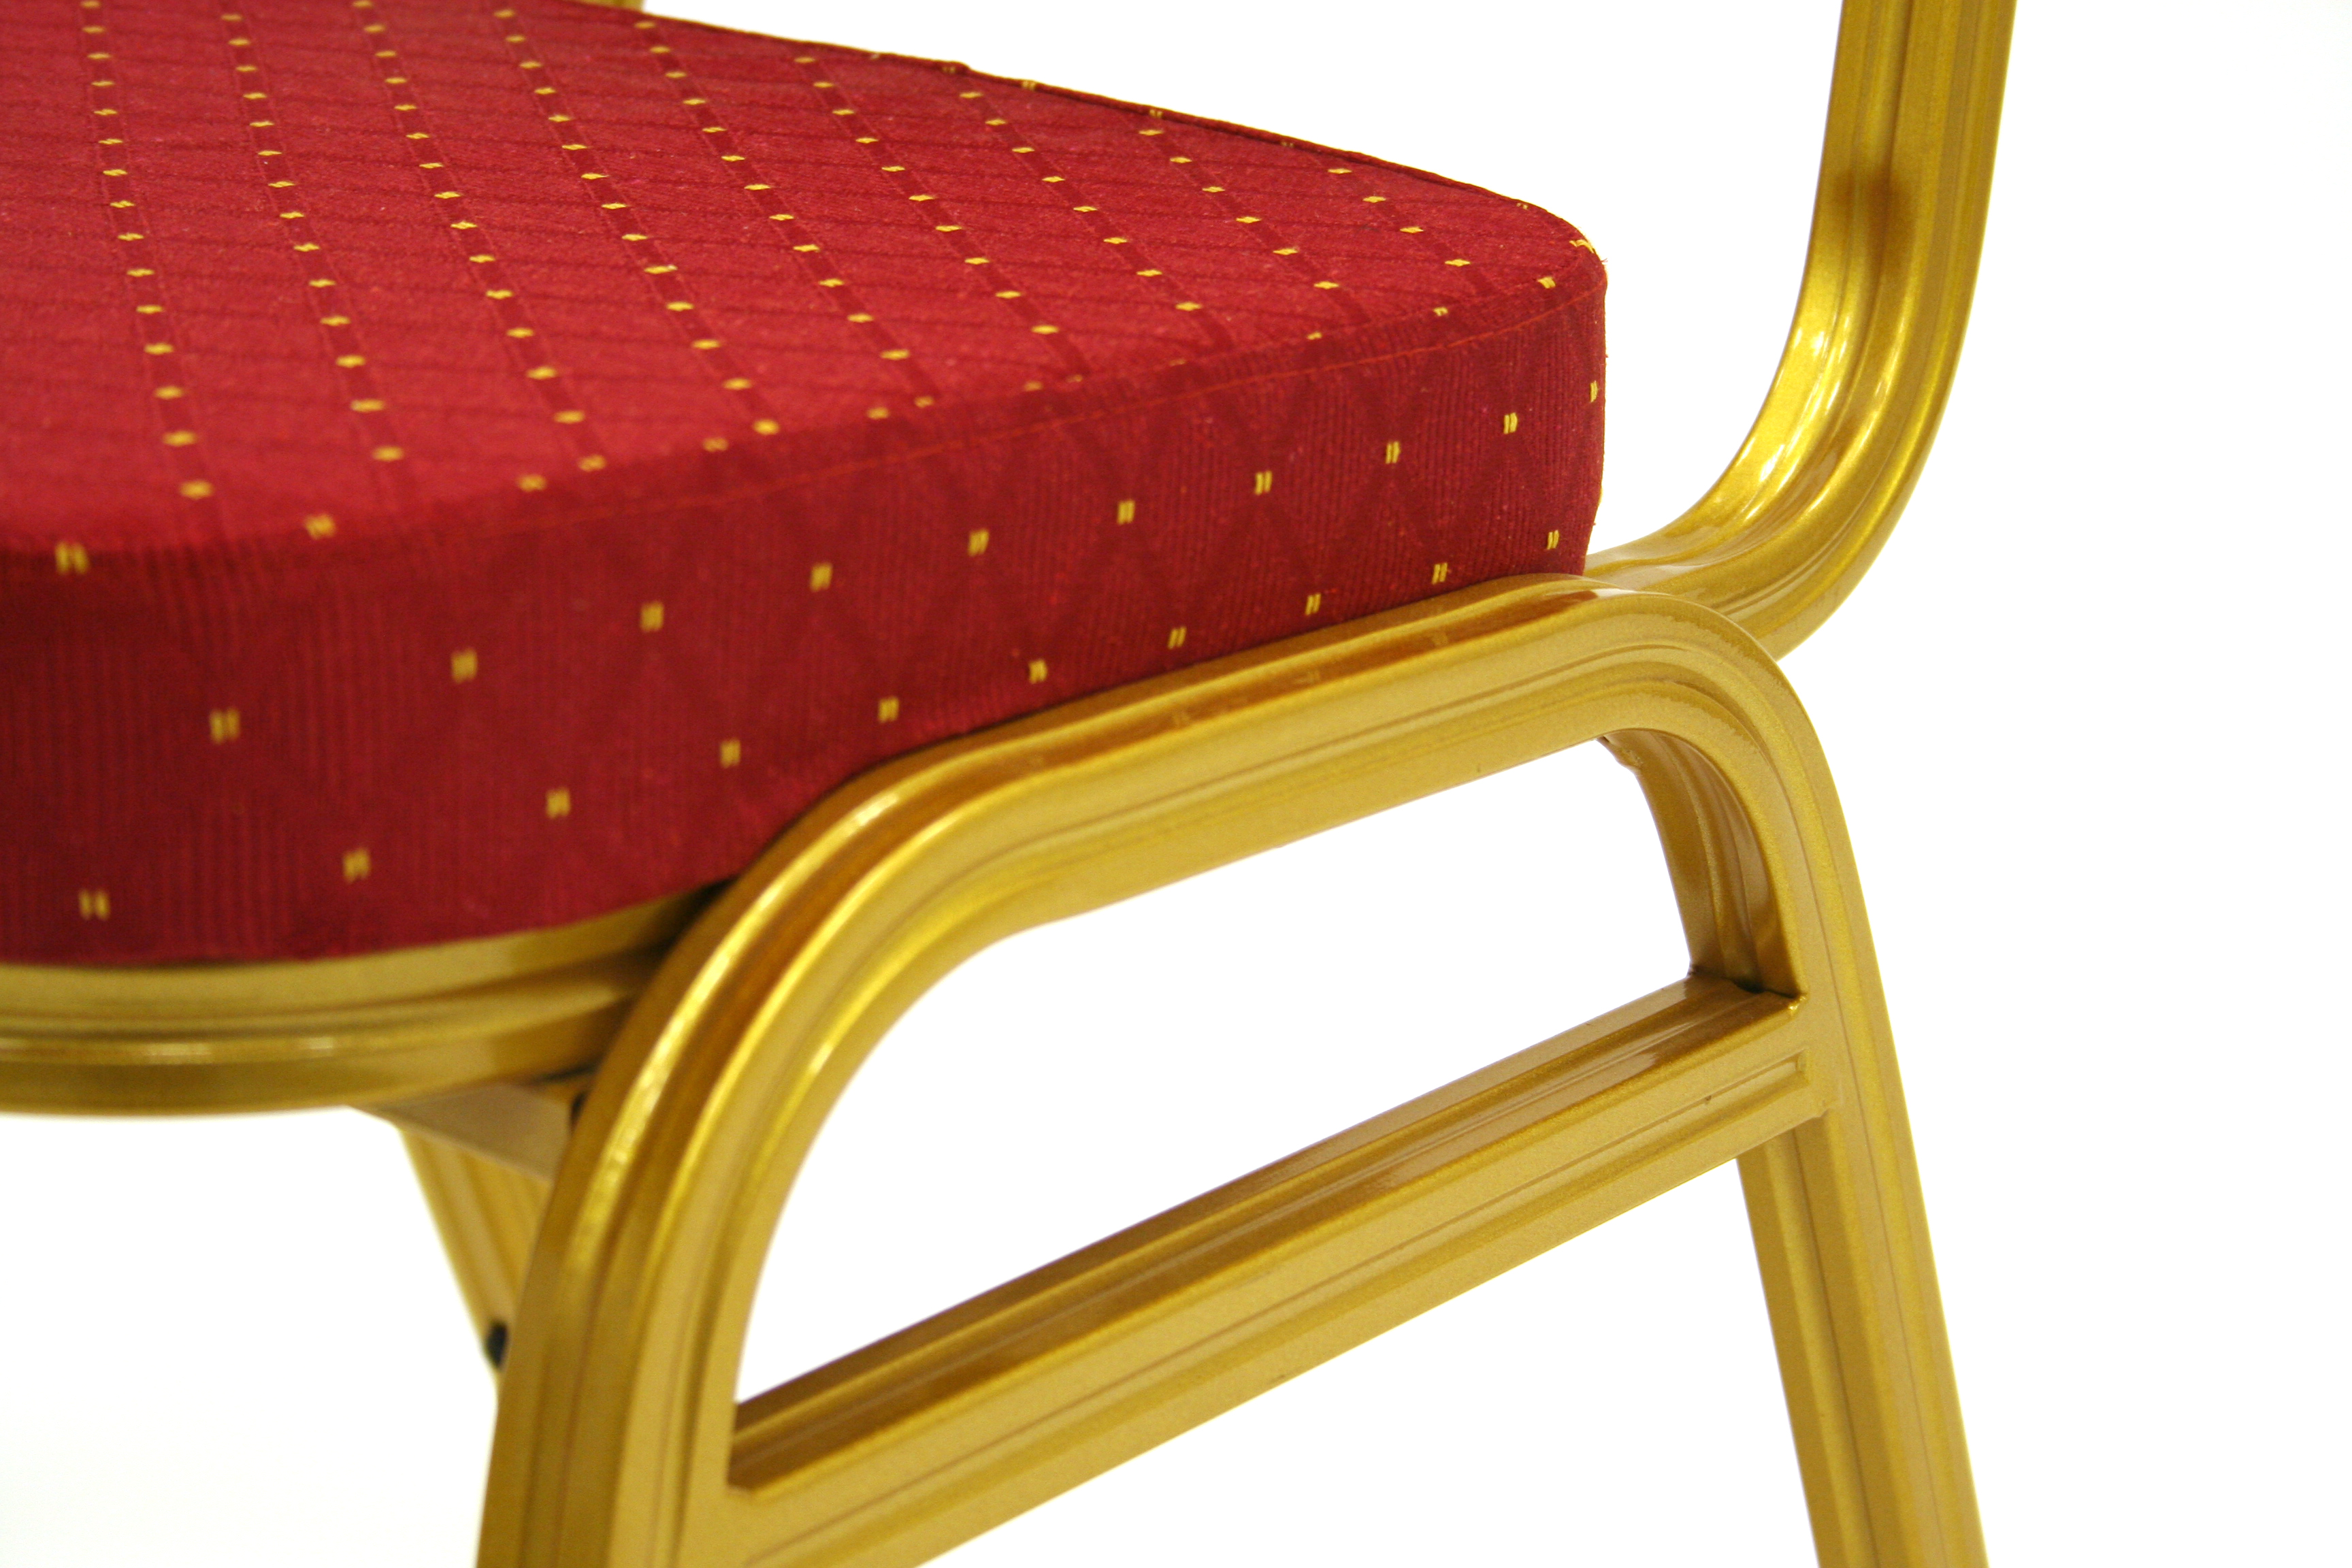 Close up side view of Gold Frame and Red Seat Pad Banqueting Chair - BE Furniture Sales